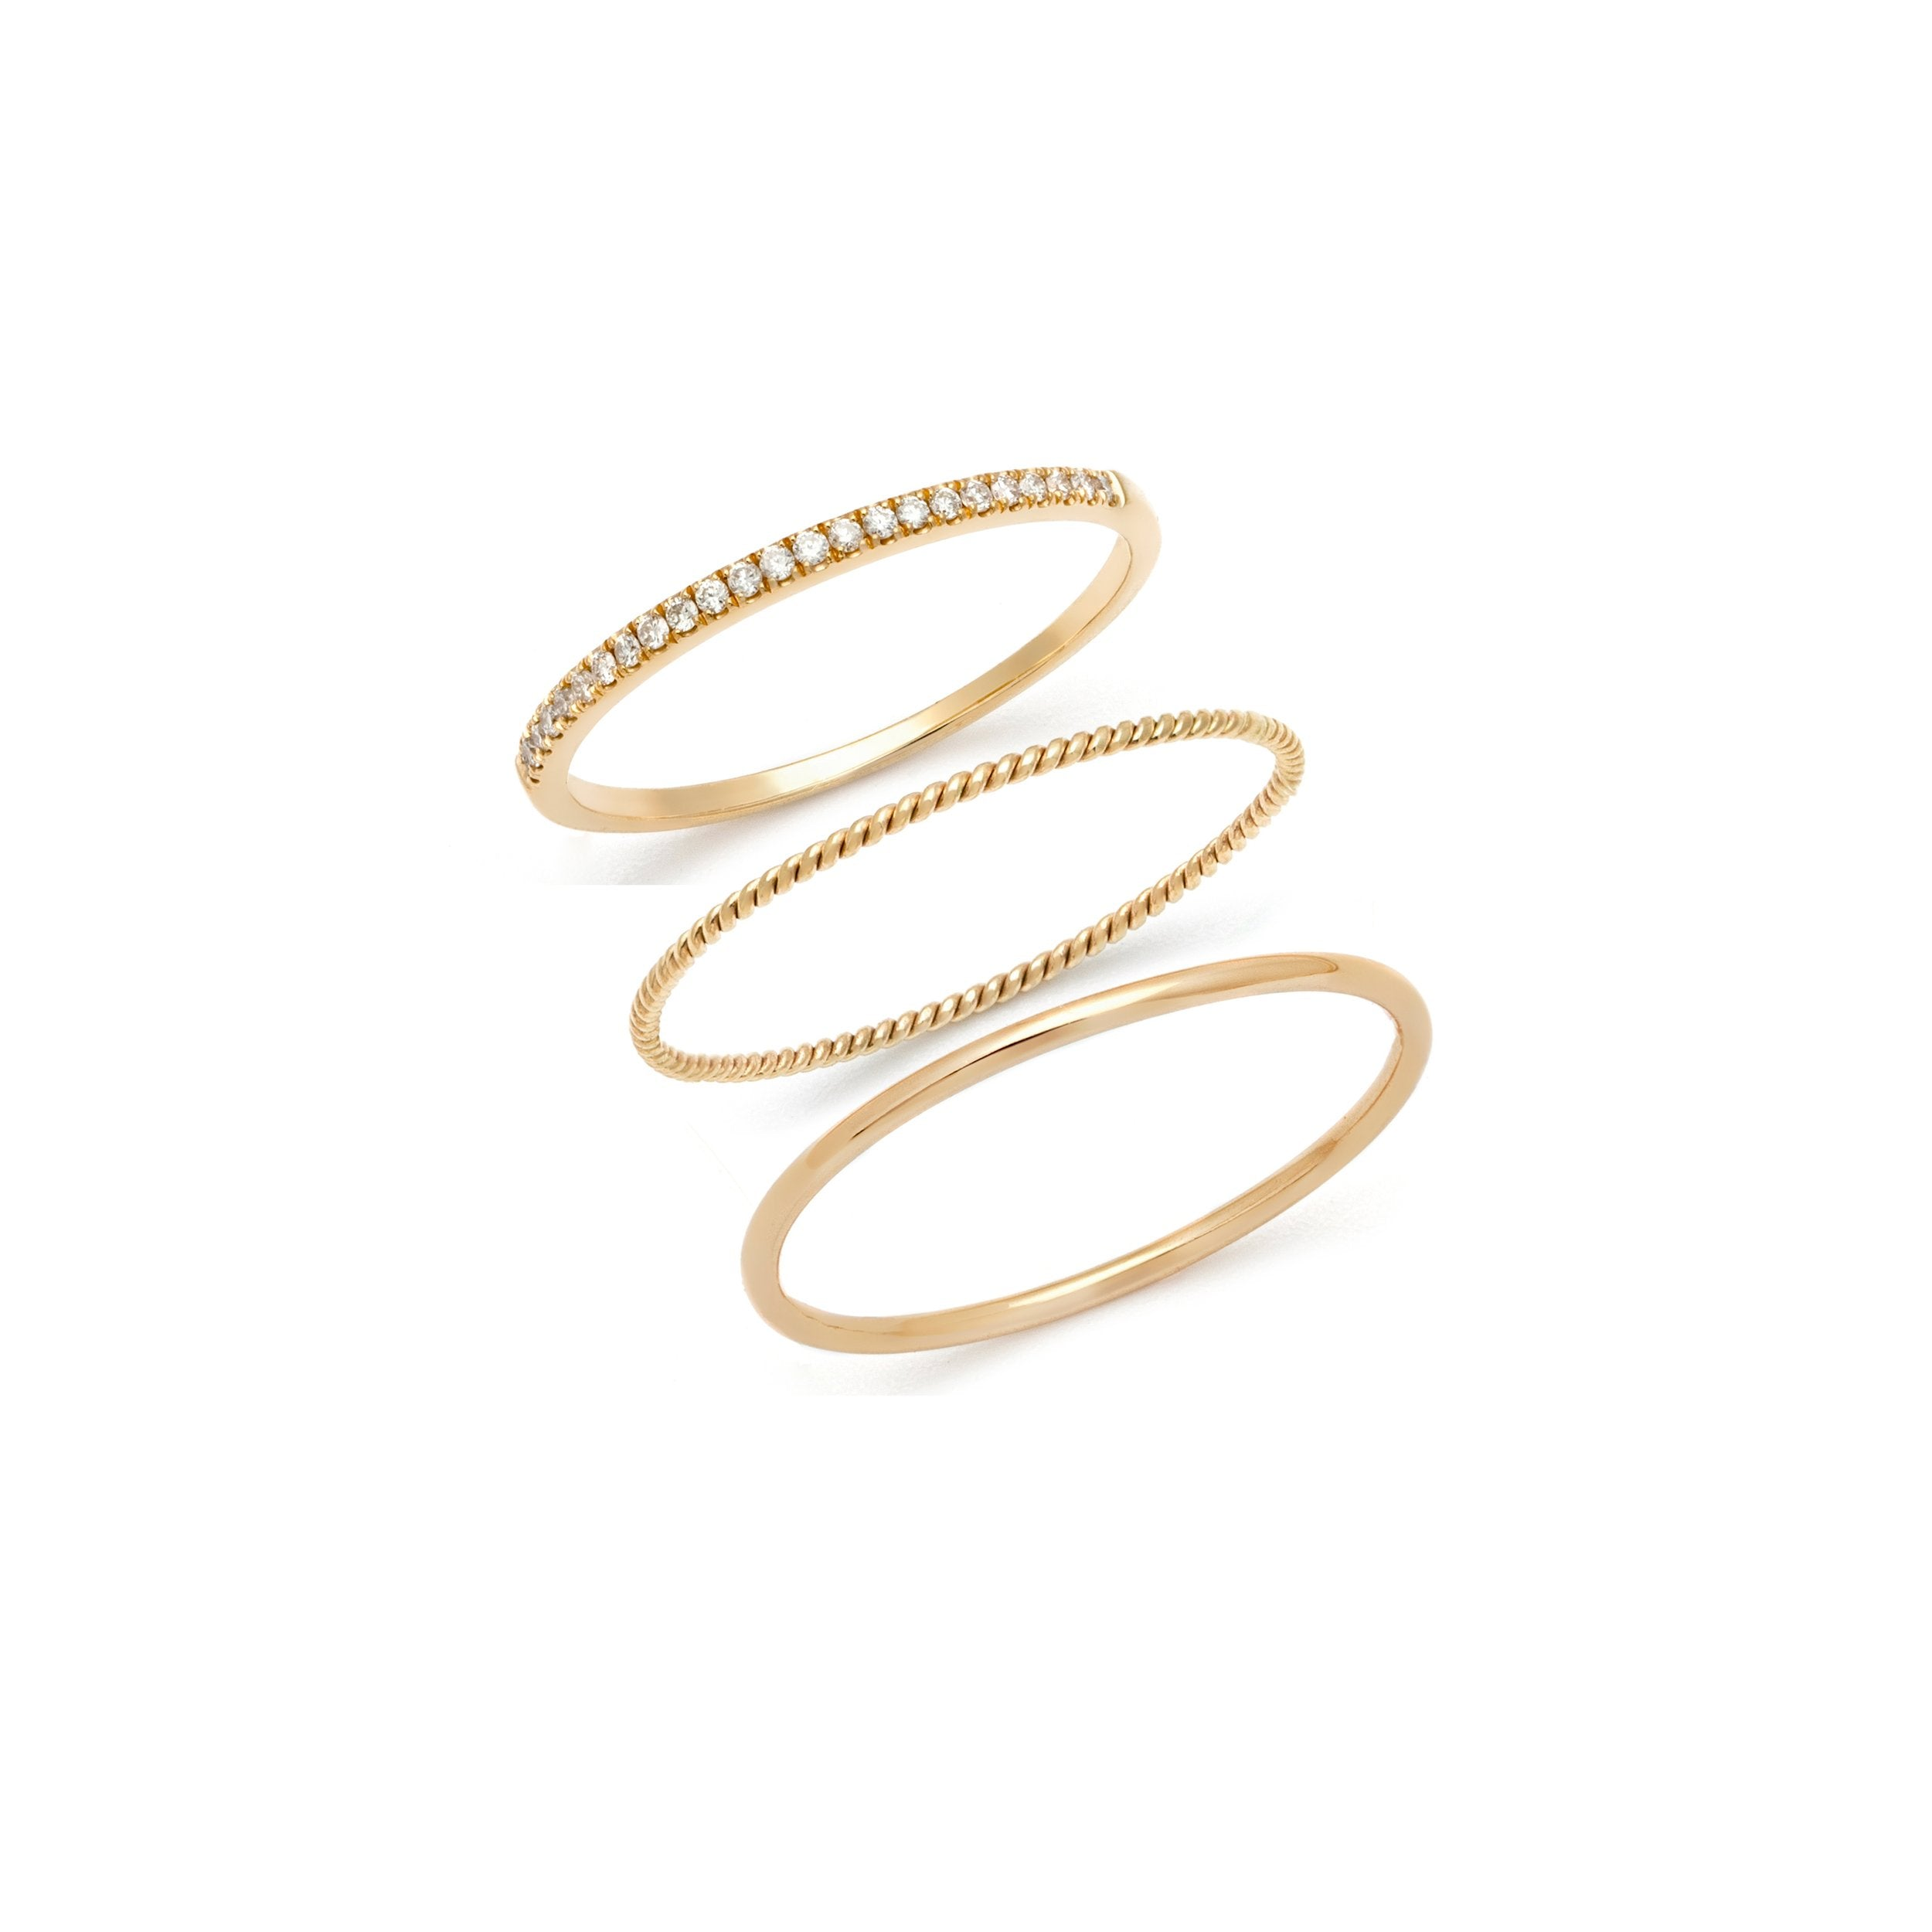 The Talia Ring Stack